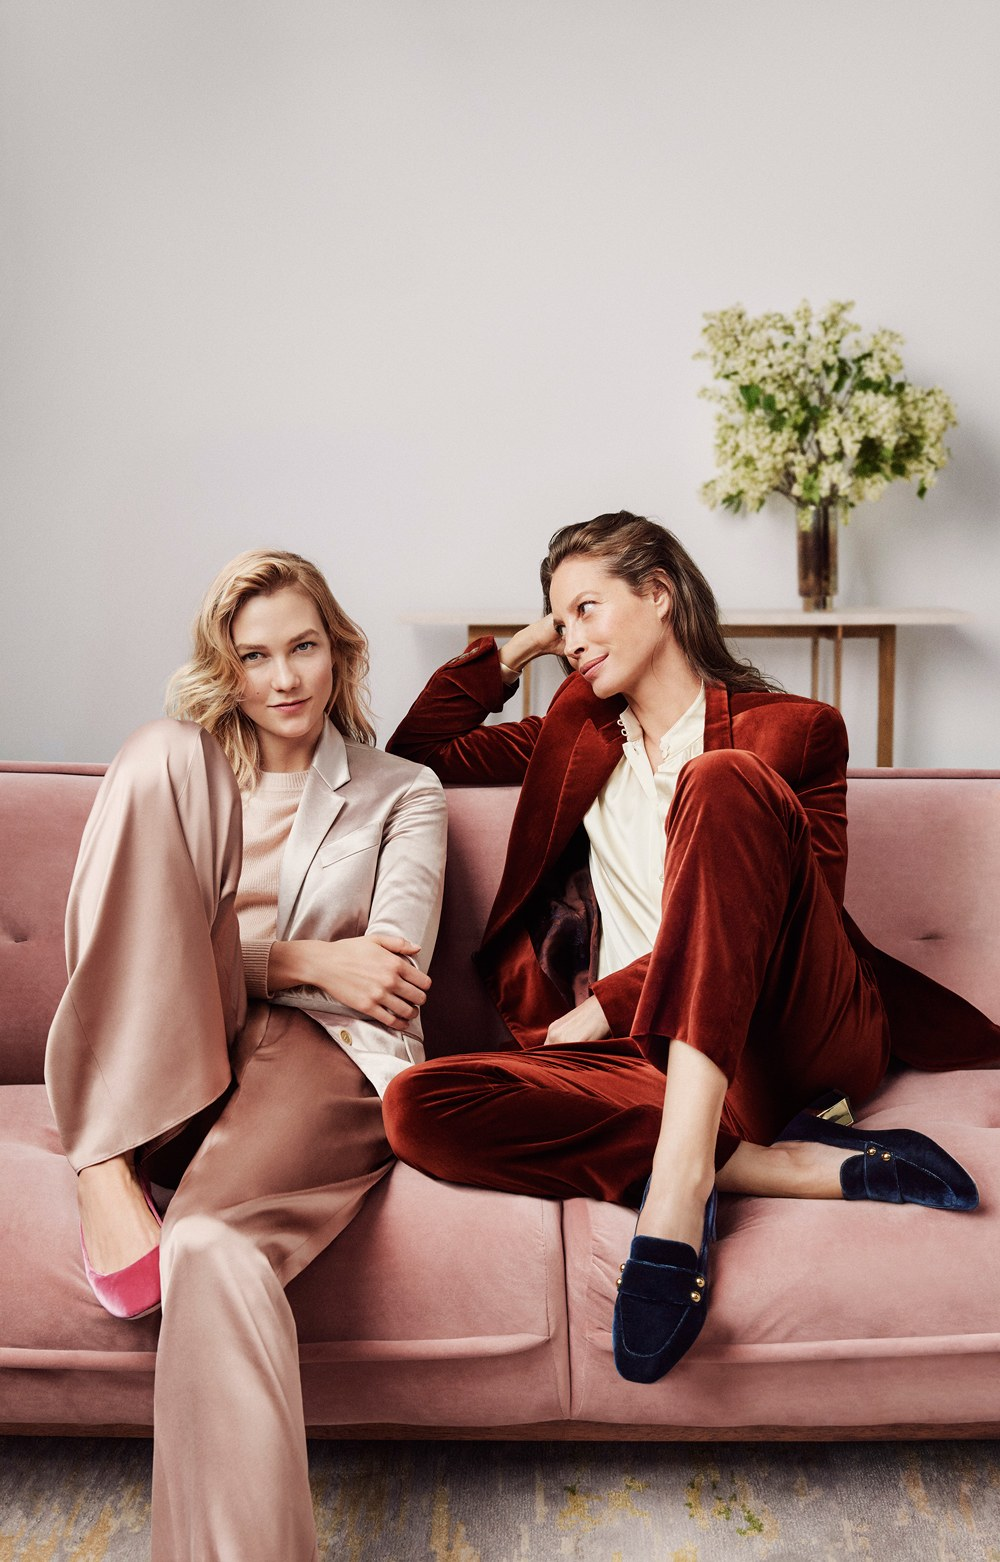 cole-haan-campaign-karlie-kloss-christy-turlington